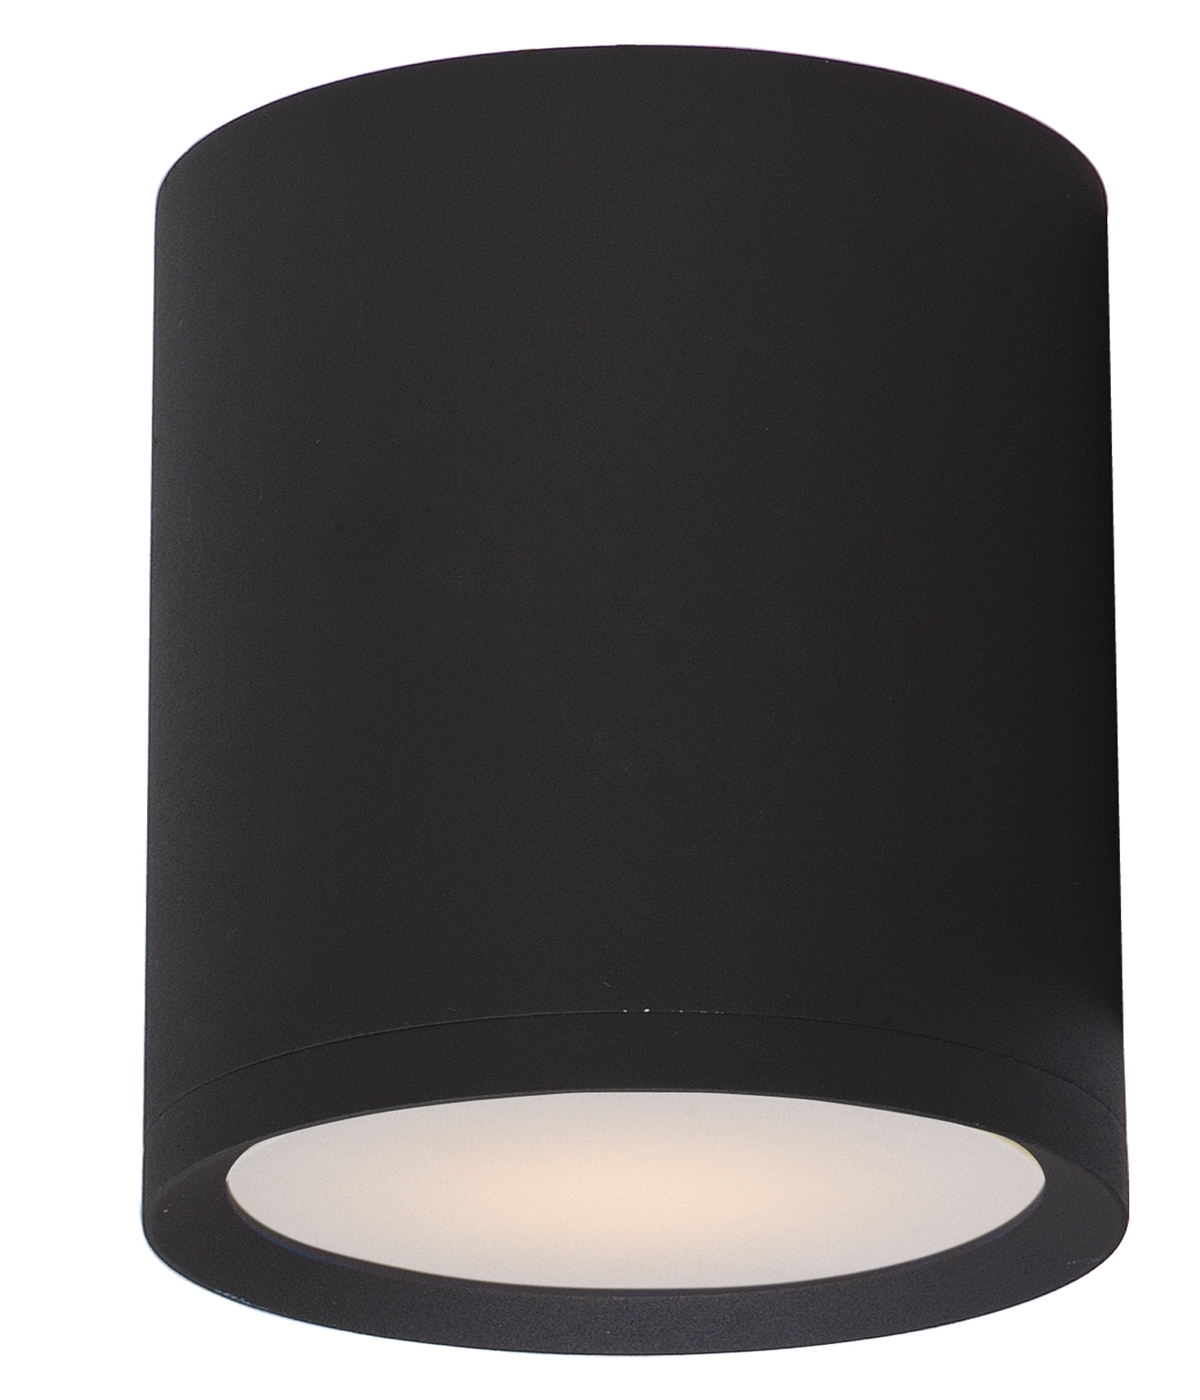 Unique Outdoor Ceiling Lights Within 2018 Outdoor Ceiling Lighting Australia – Coryc (View 17 of 20)